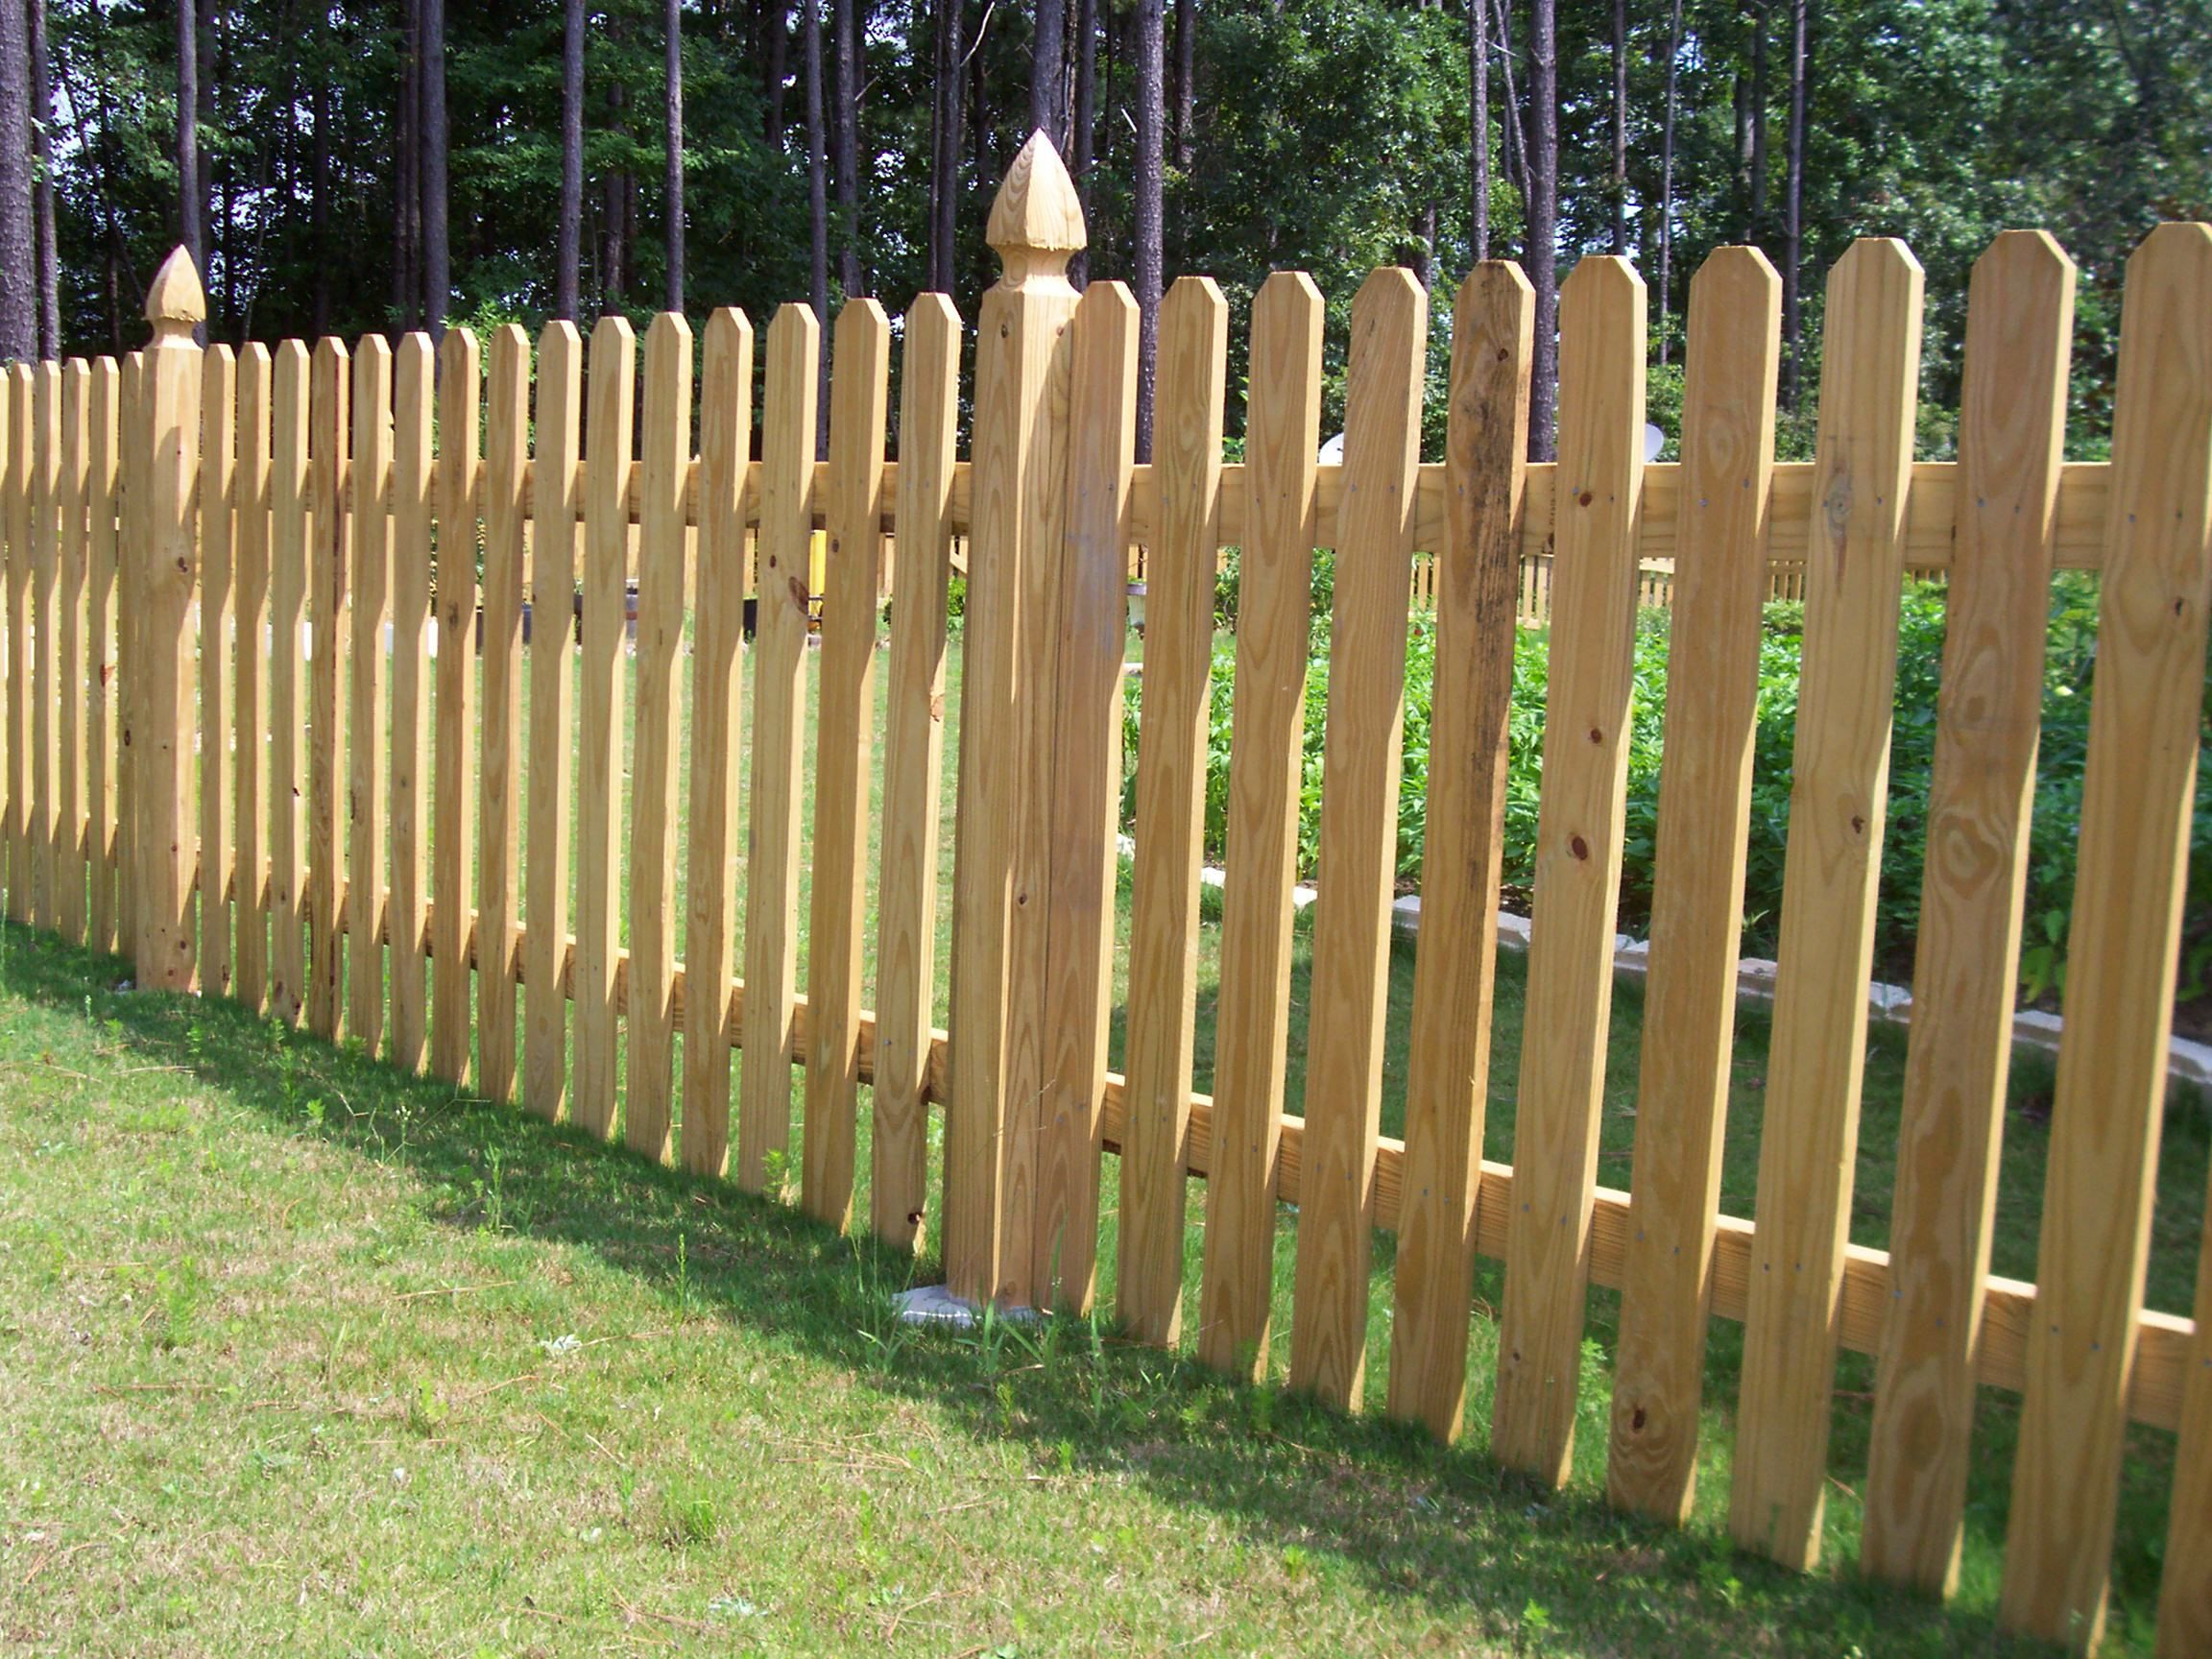 Custom wood picket fence by mossy oak fence wood fence designs wood dog ear picket fence designed by mossy oak fence baanklon Gallery